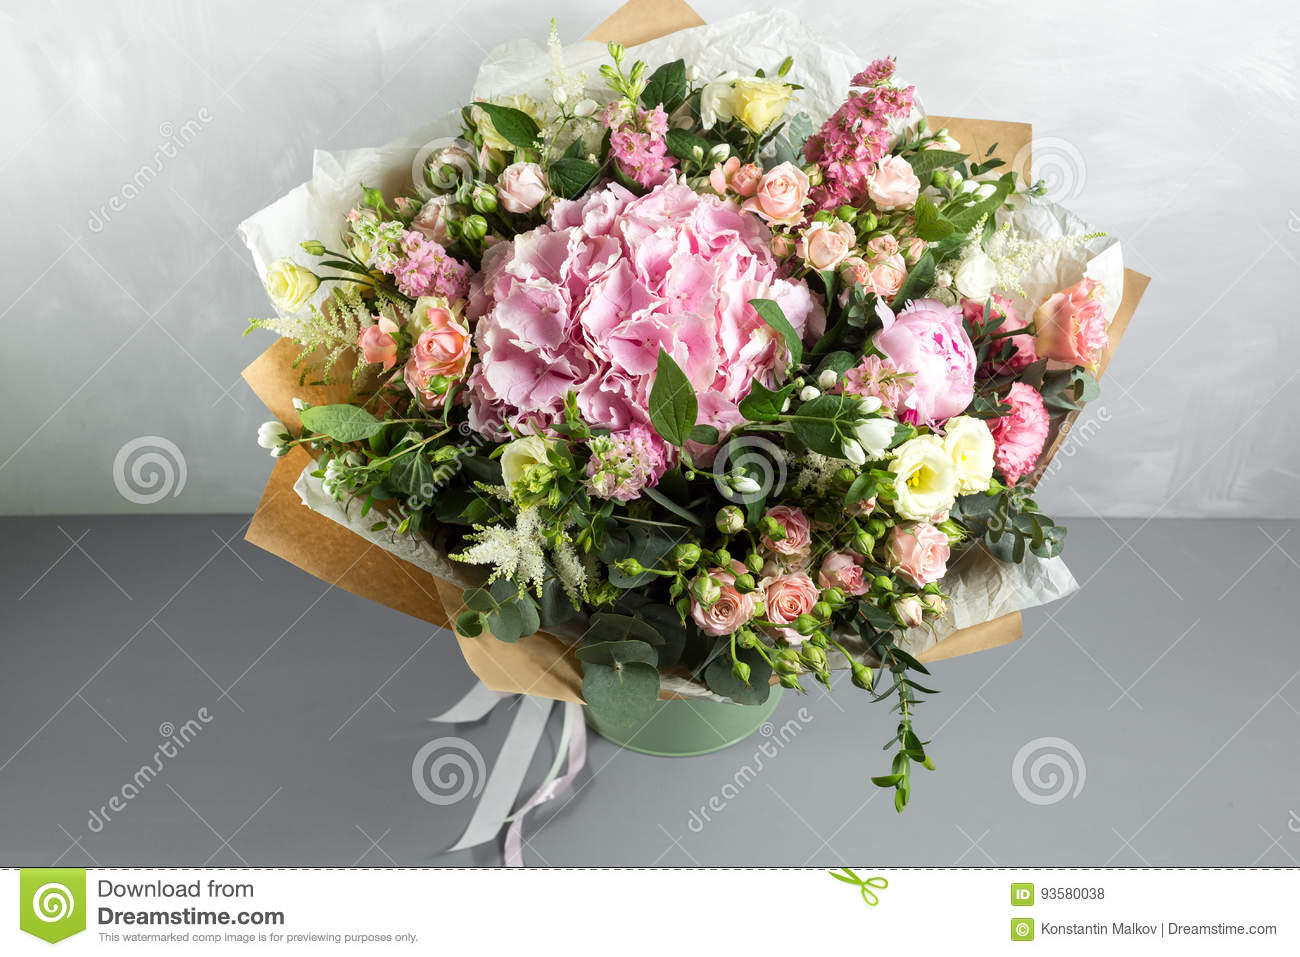 Still life with a bouquet of flowers the florist put together a download still life with a bouquet of flowers the florist put together a beautiful bunch izmirmasajfo